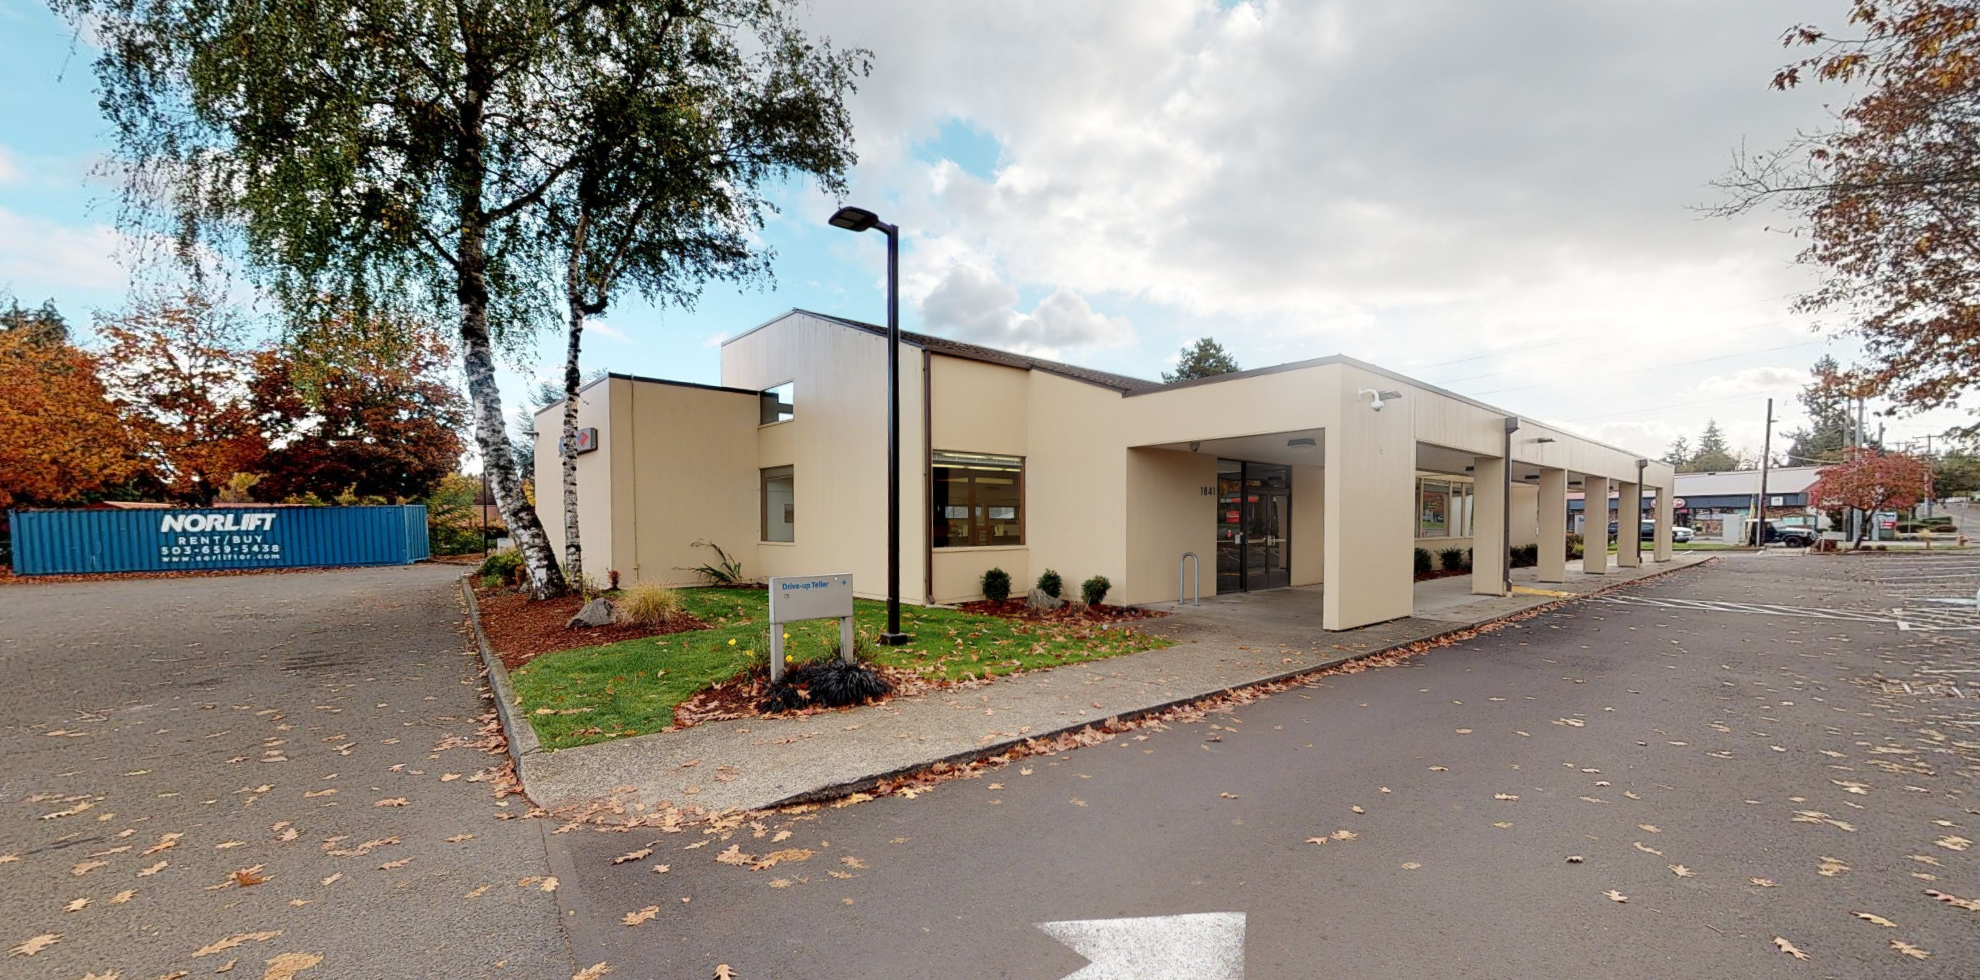 Bank of America financial center with drive-thru ATM and teller | 1841 S Molalla Ave, Oregon City, OR 97045